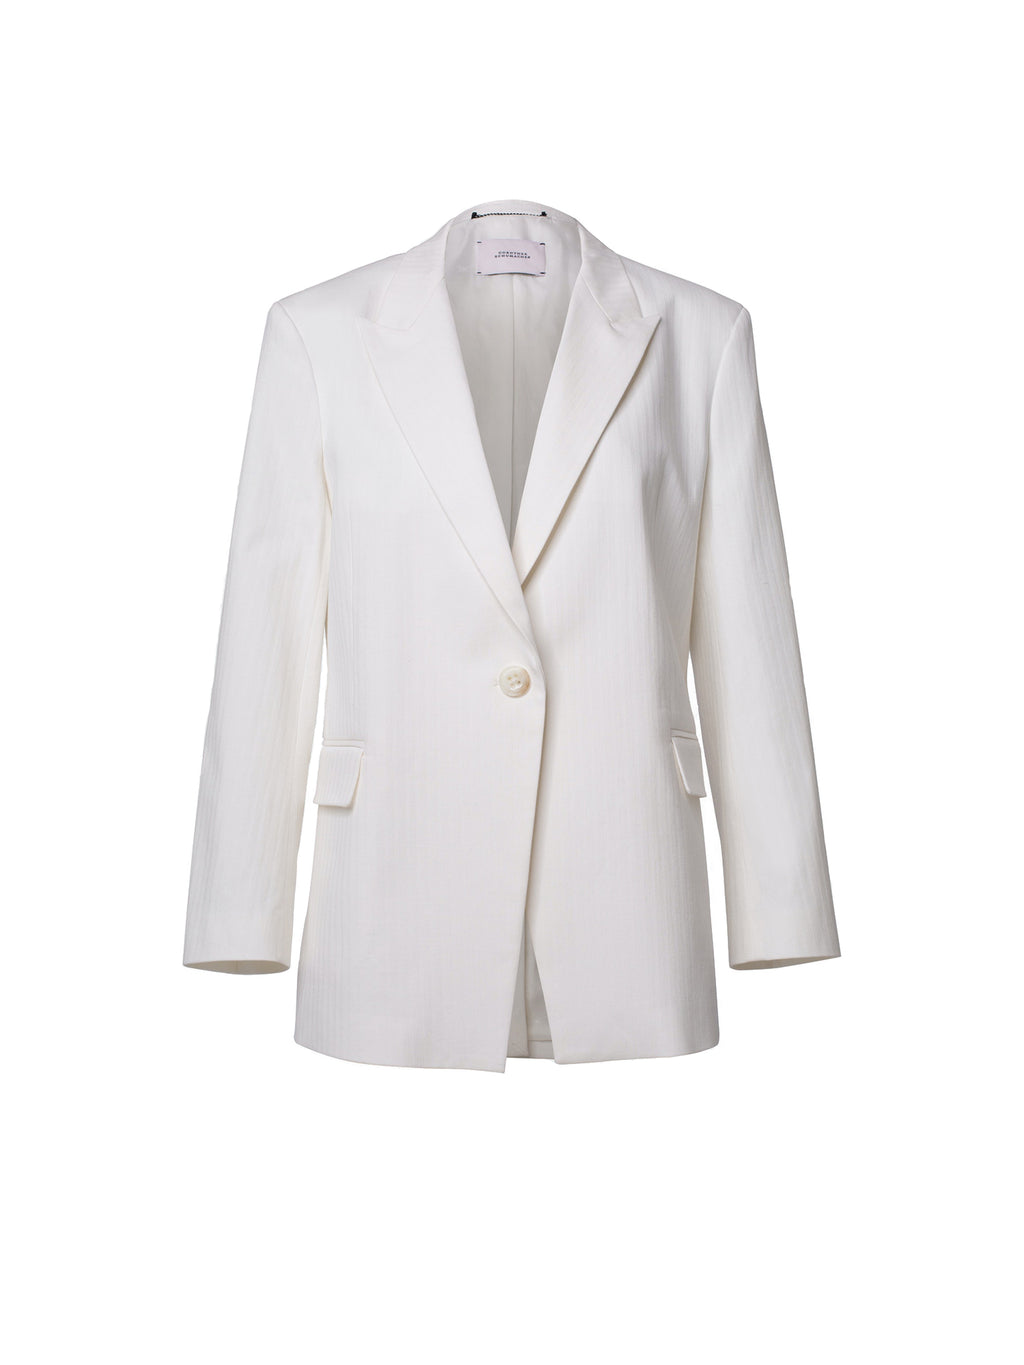 Dorothee Schumacher Tailored Coolness Jacket